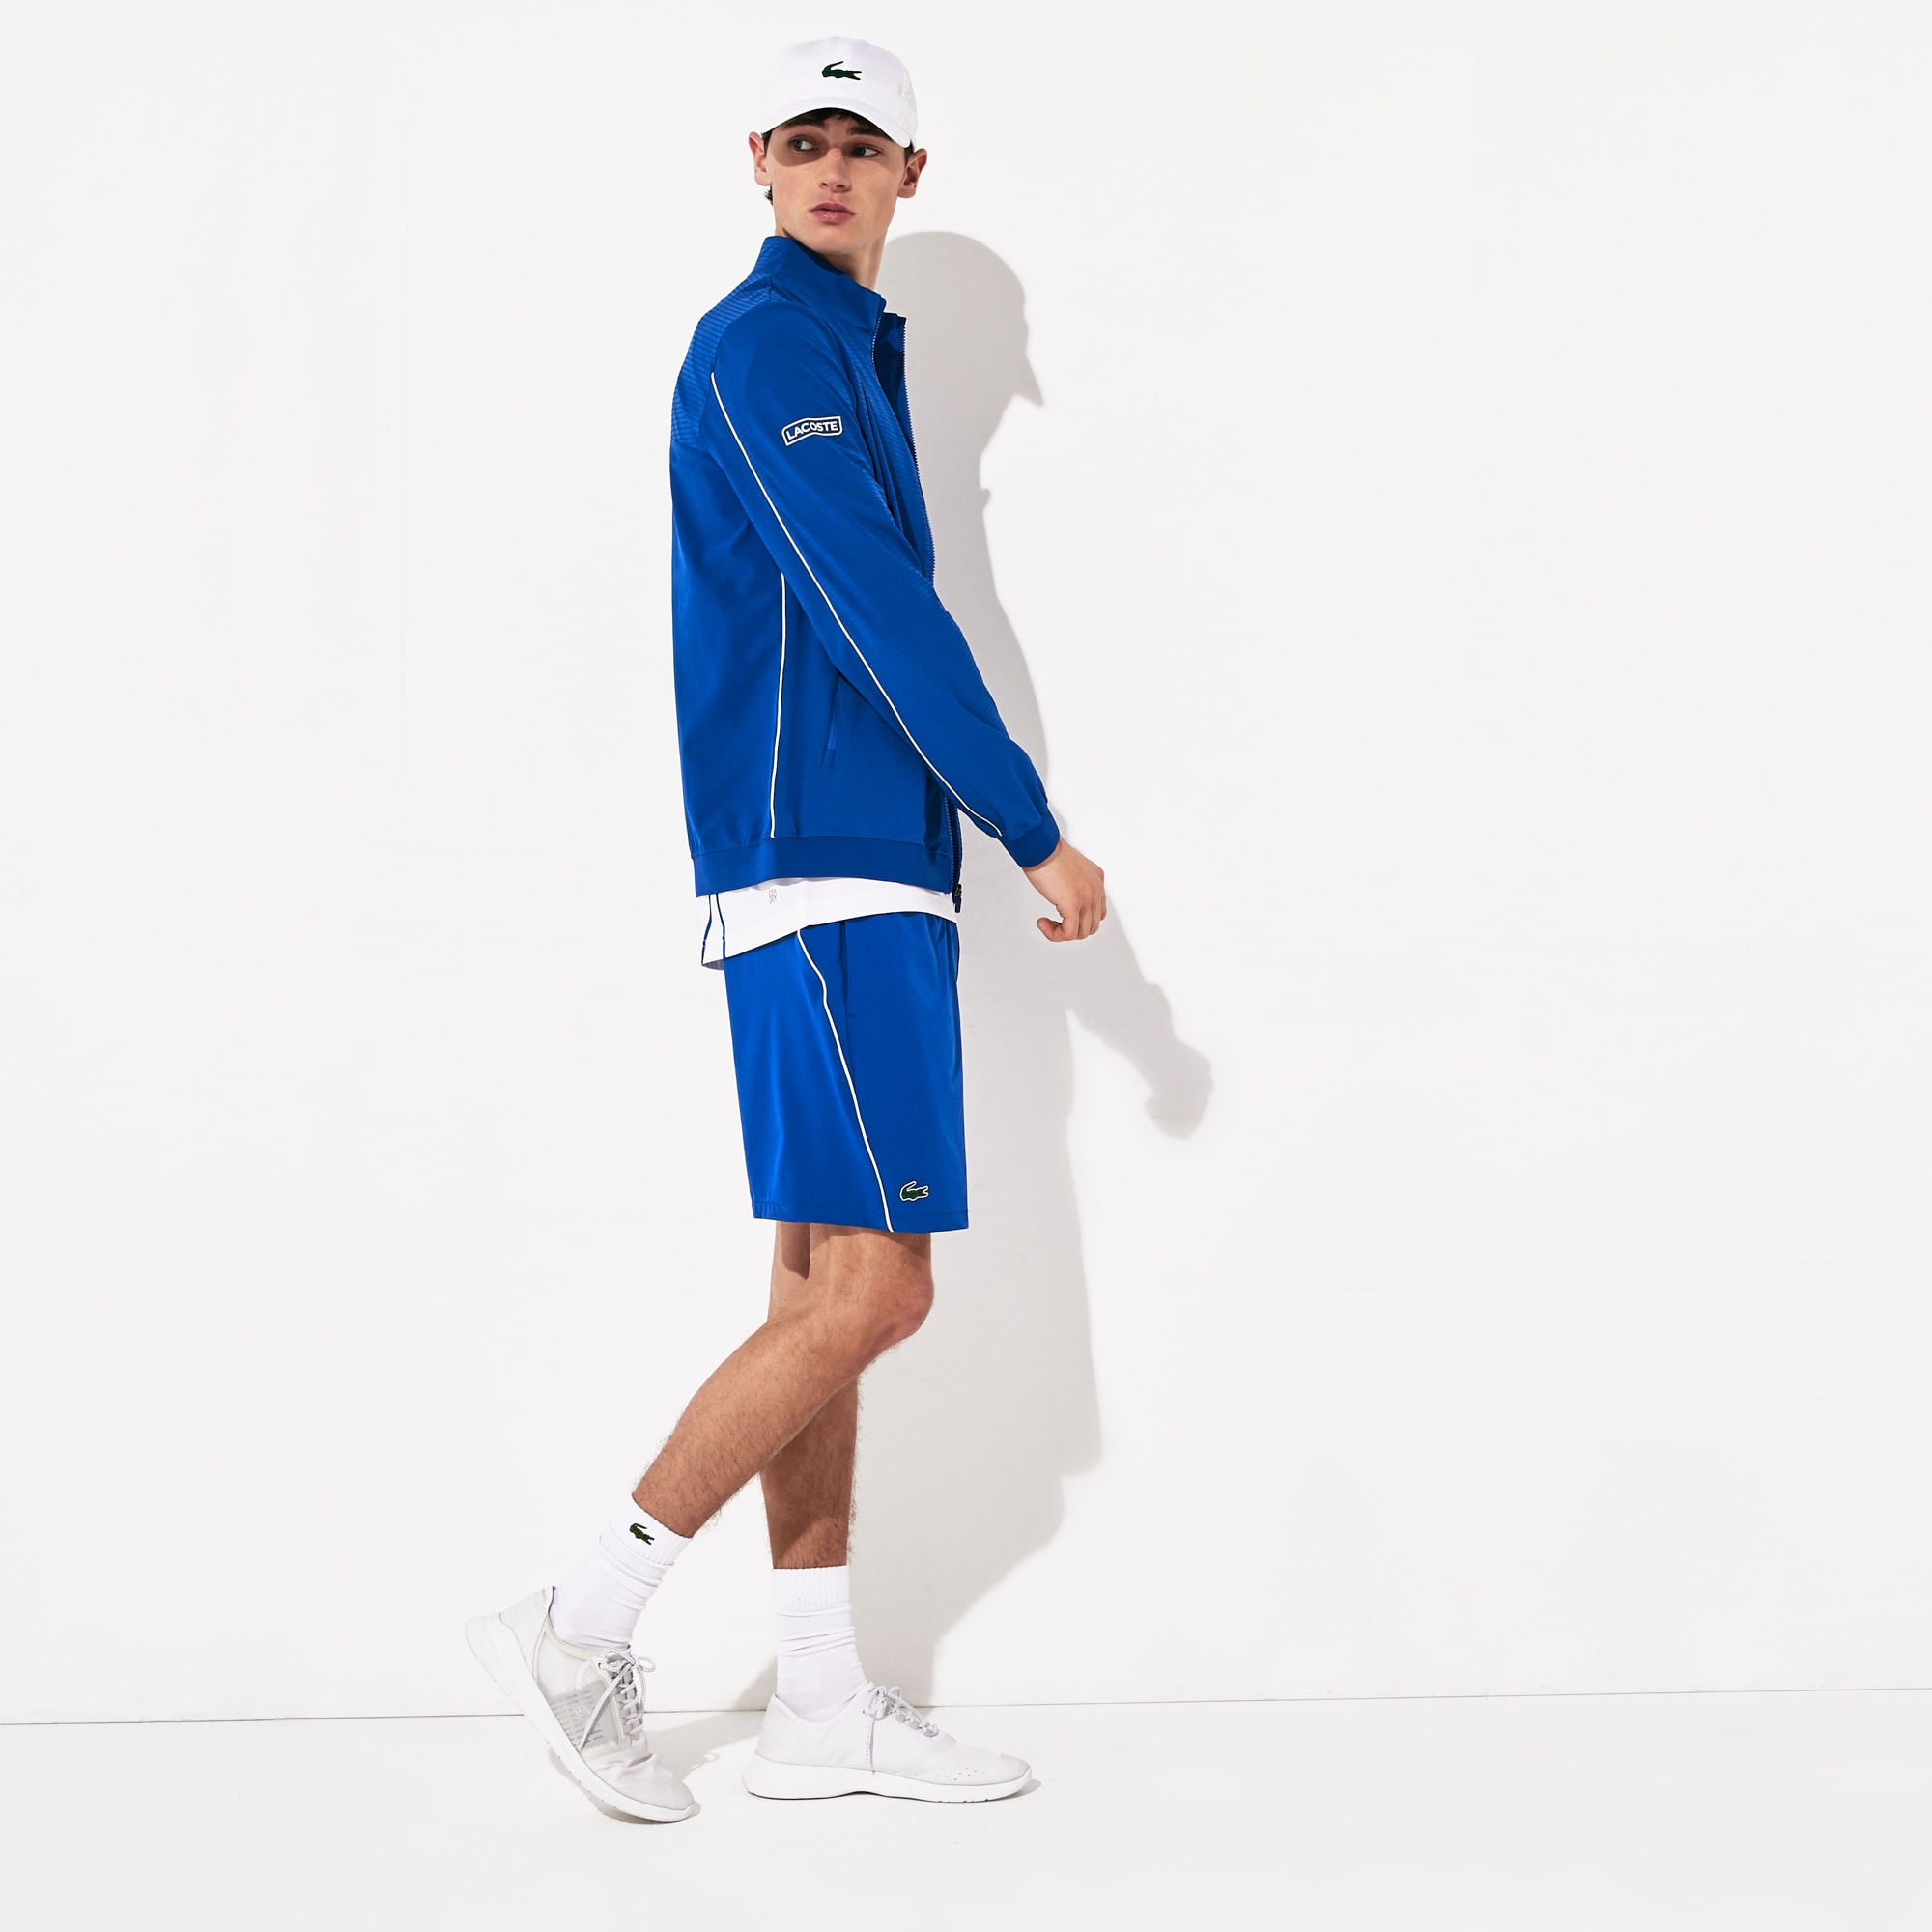 Men's SPORT Novak Djokovic Textured Zip Jacket